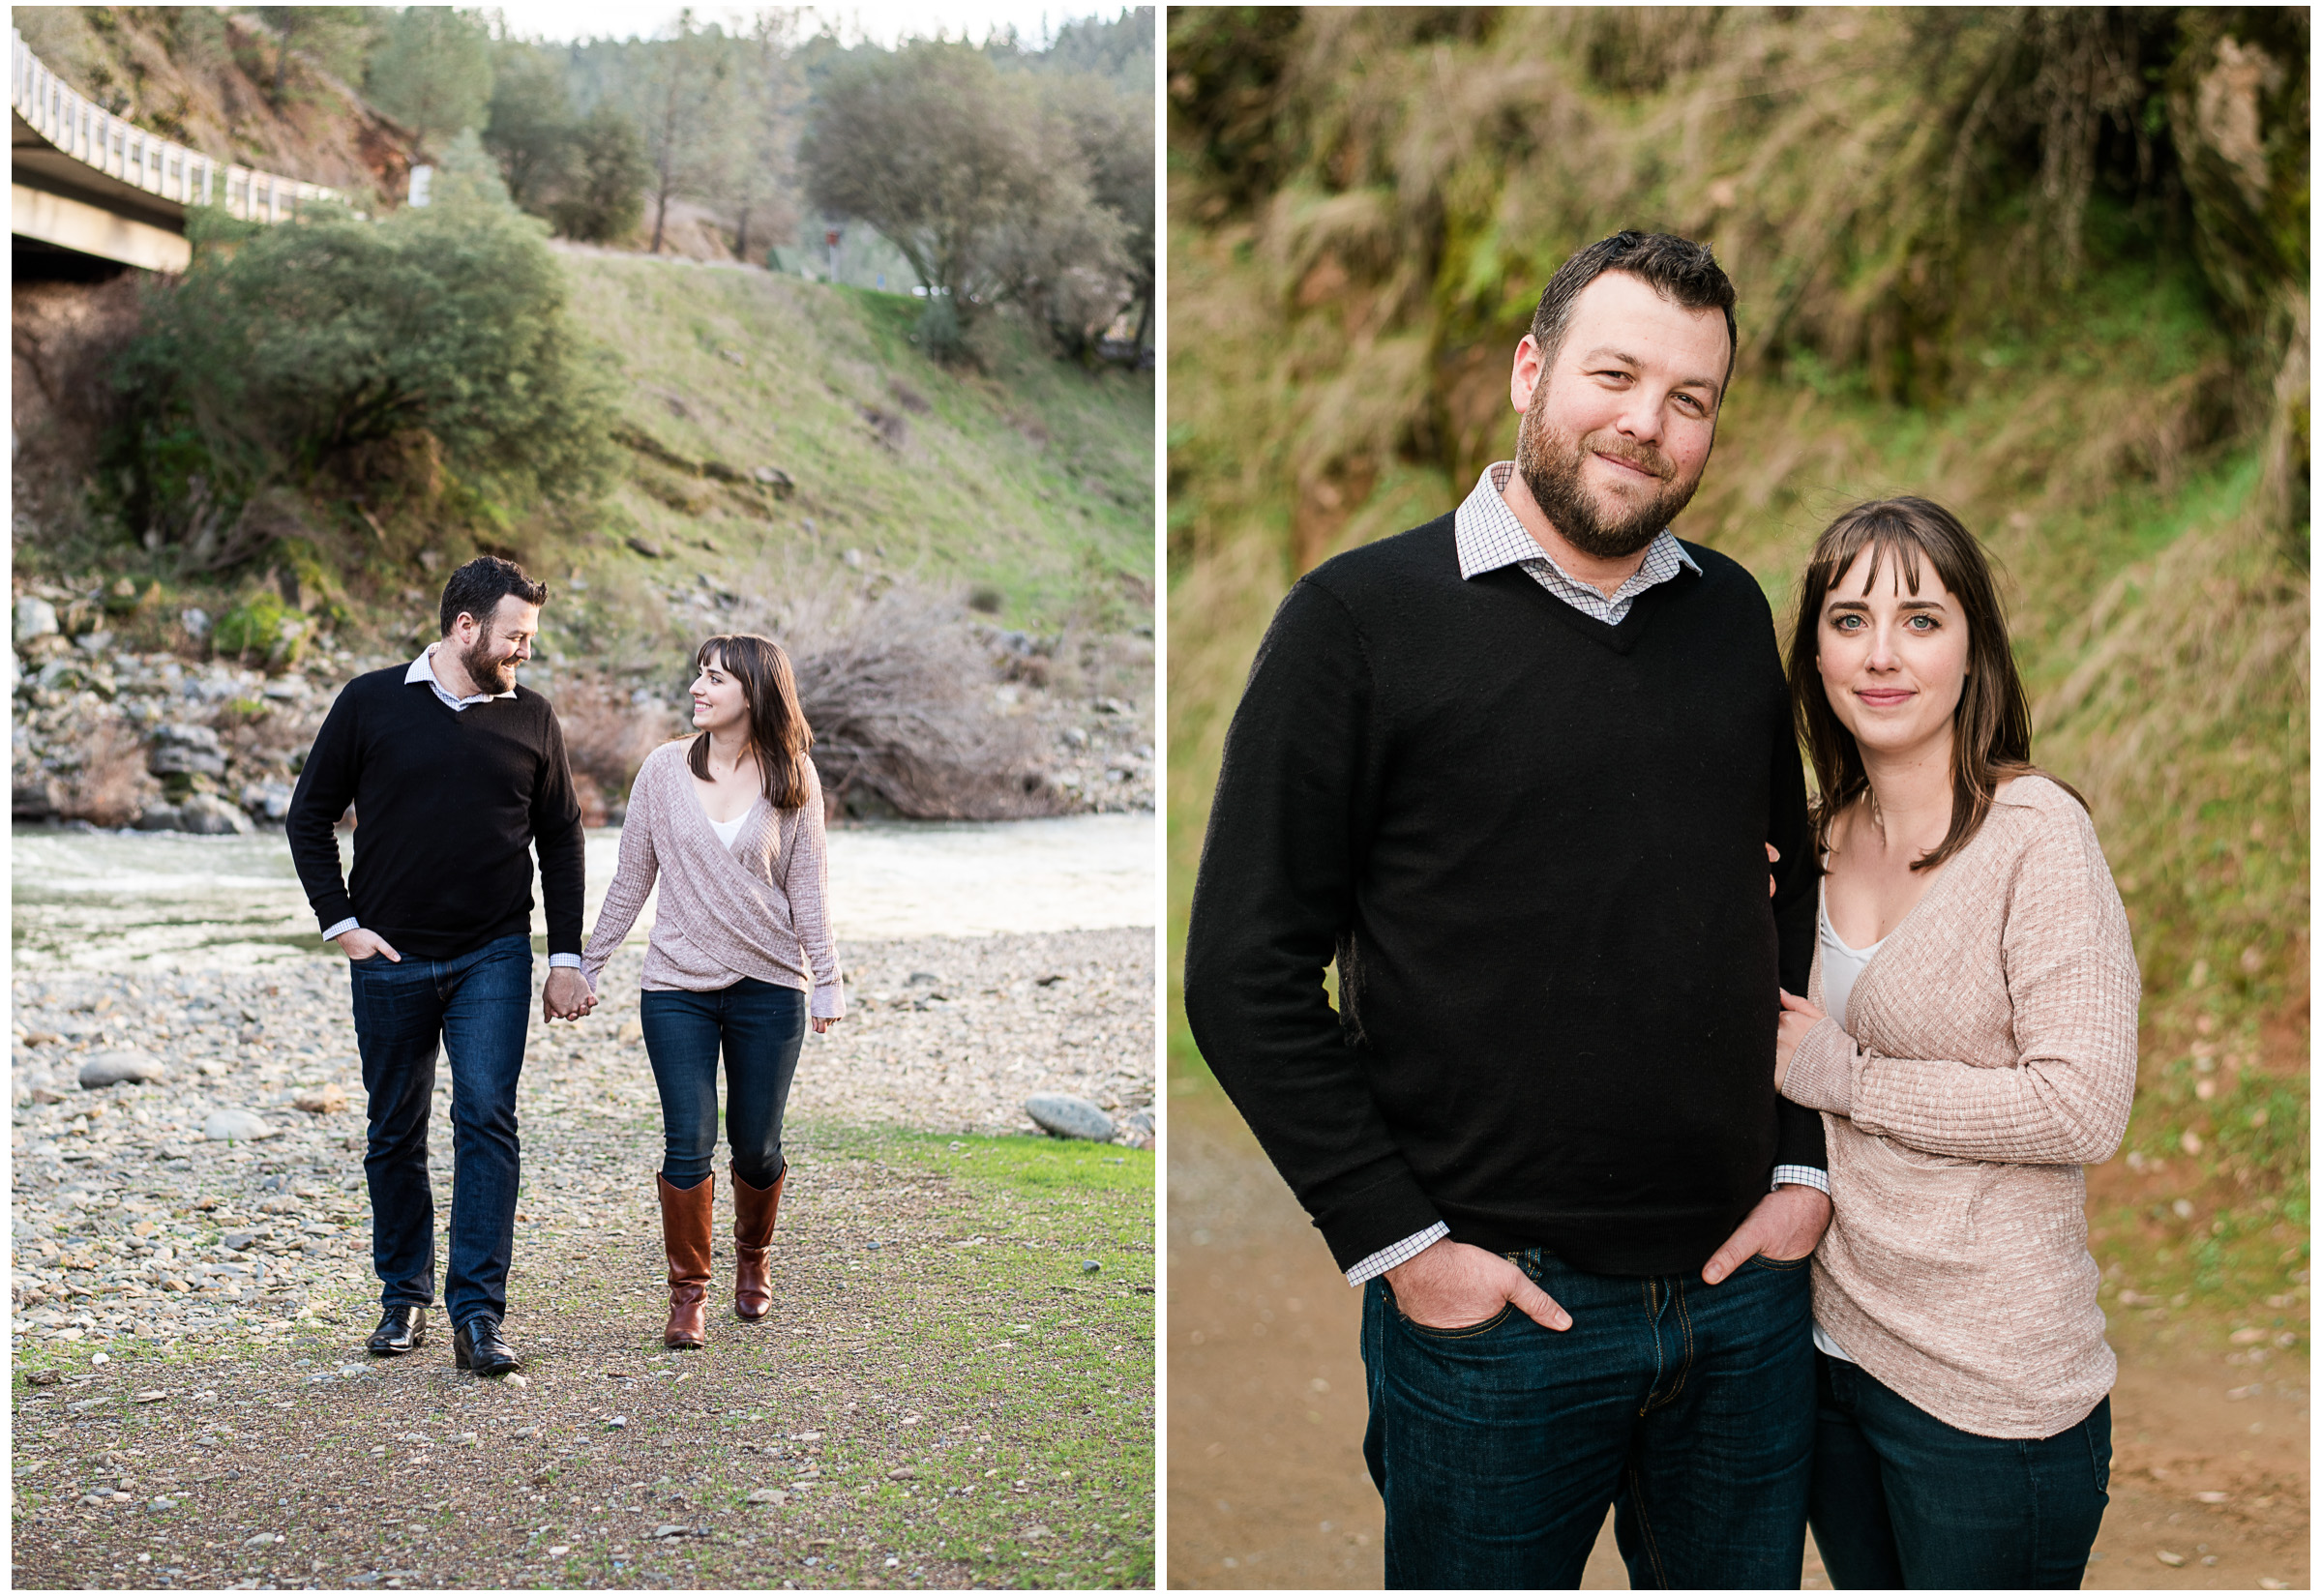 Auburn Engagement Session - Sacramento Photographer - Justin Wilcox Photography - 12.jpg